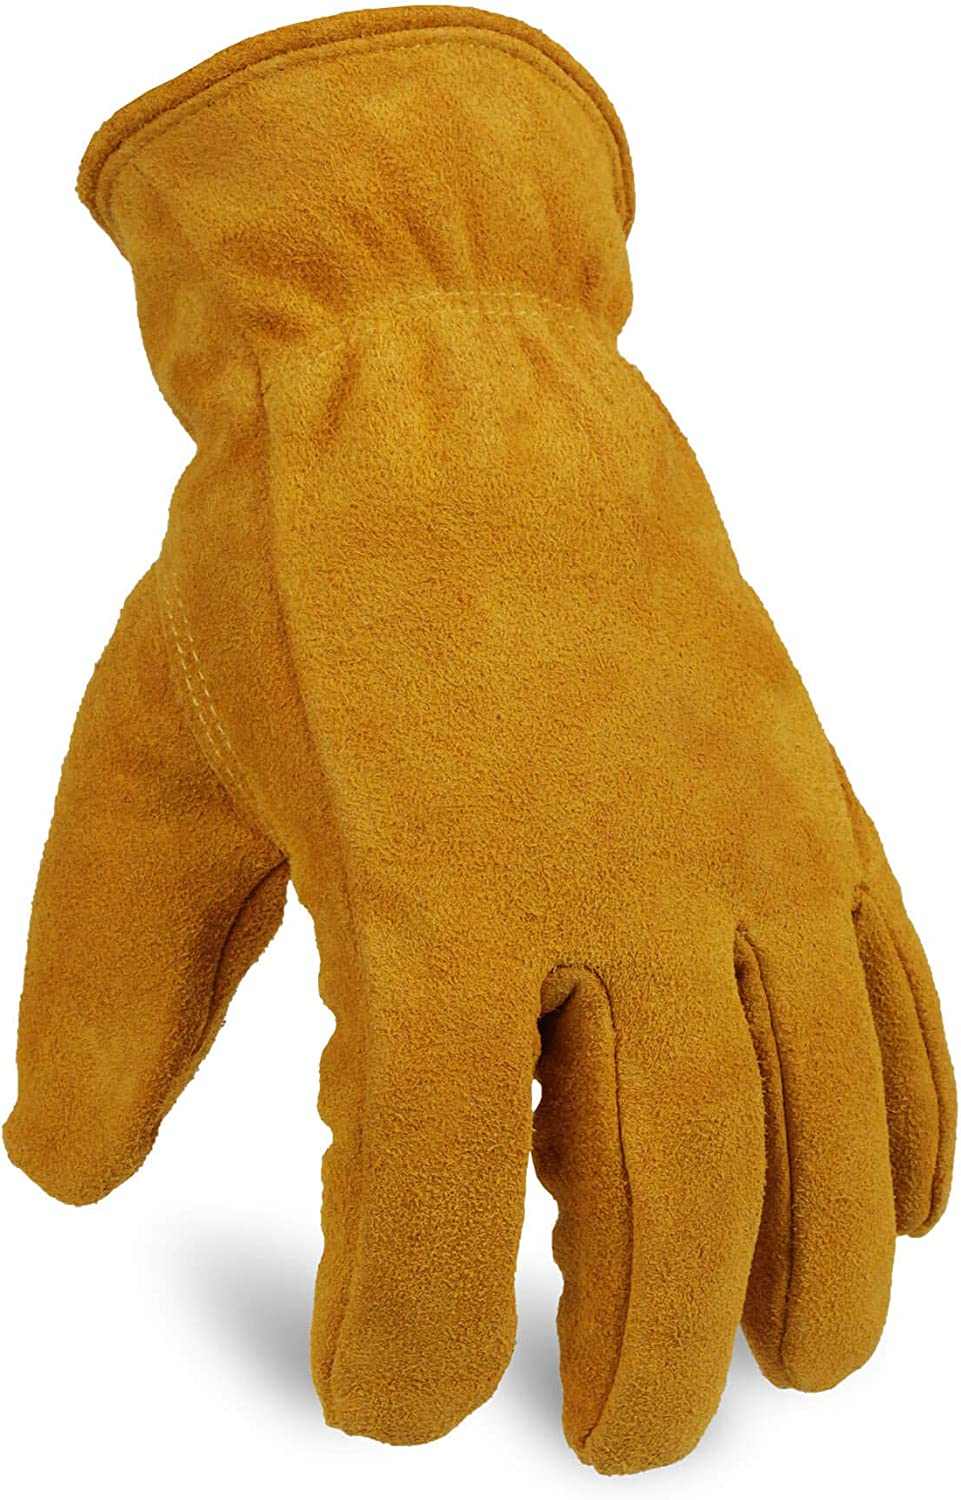 OZERO Work Gloves Winter Insulated Snow Cold Proof Leather Glove Thick Thermal Imitation Lambswool - Extra Grip Flexible Warm for Working in Cold Weather for Men and Women (Gold,X-Large)